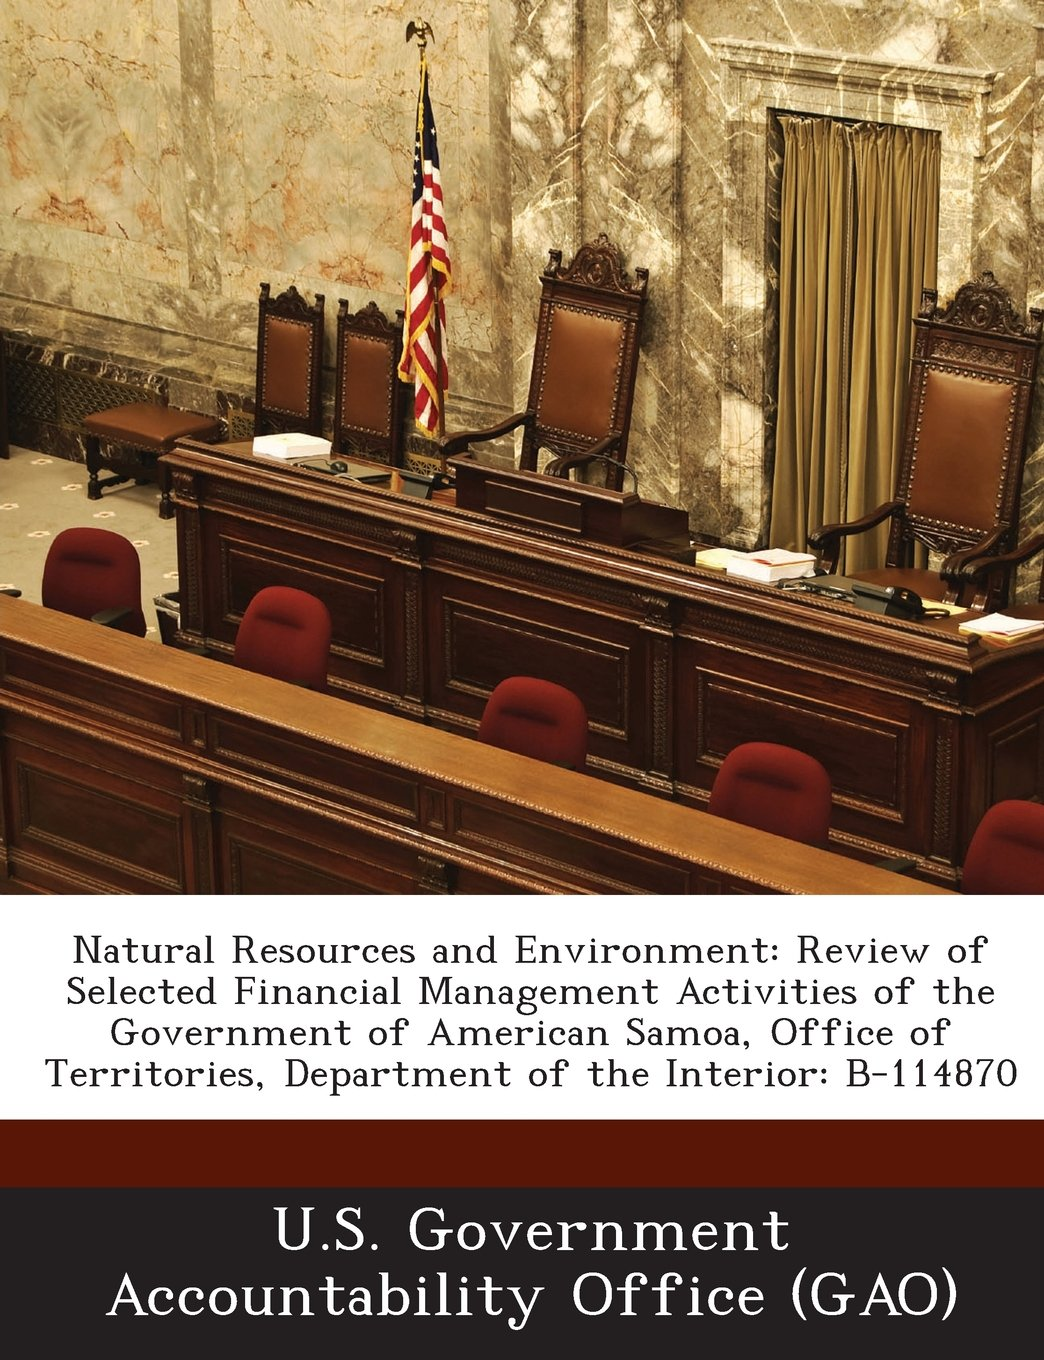 Download Natural Resources and Environment: Review of Selected Financial Management Activities of the Government of American Samoa, Office of Territories, Department of the Interior: B-114870 pdf